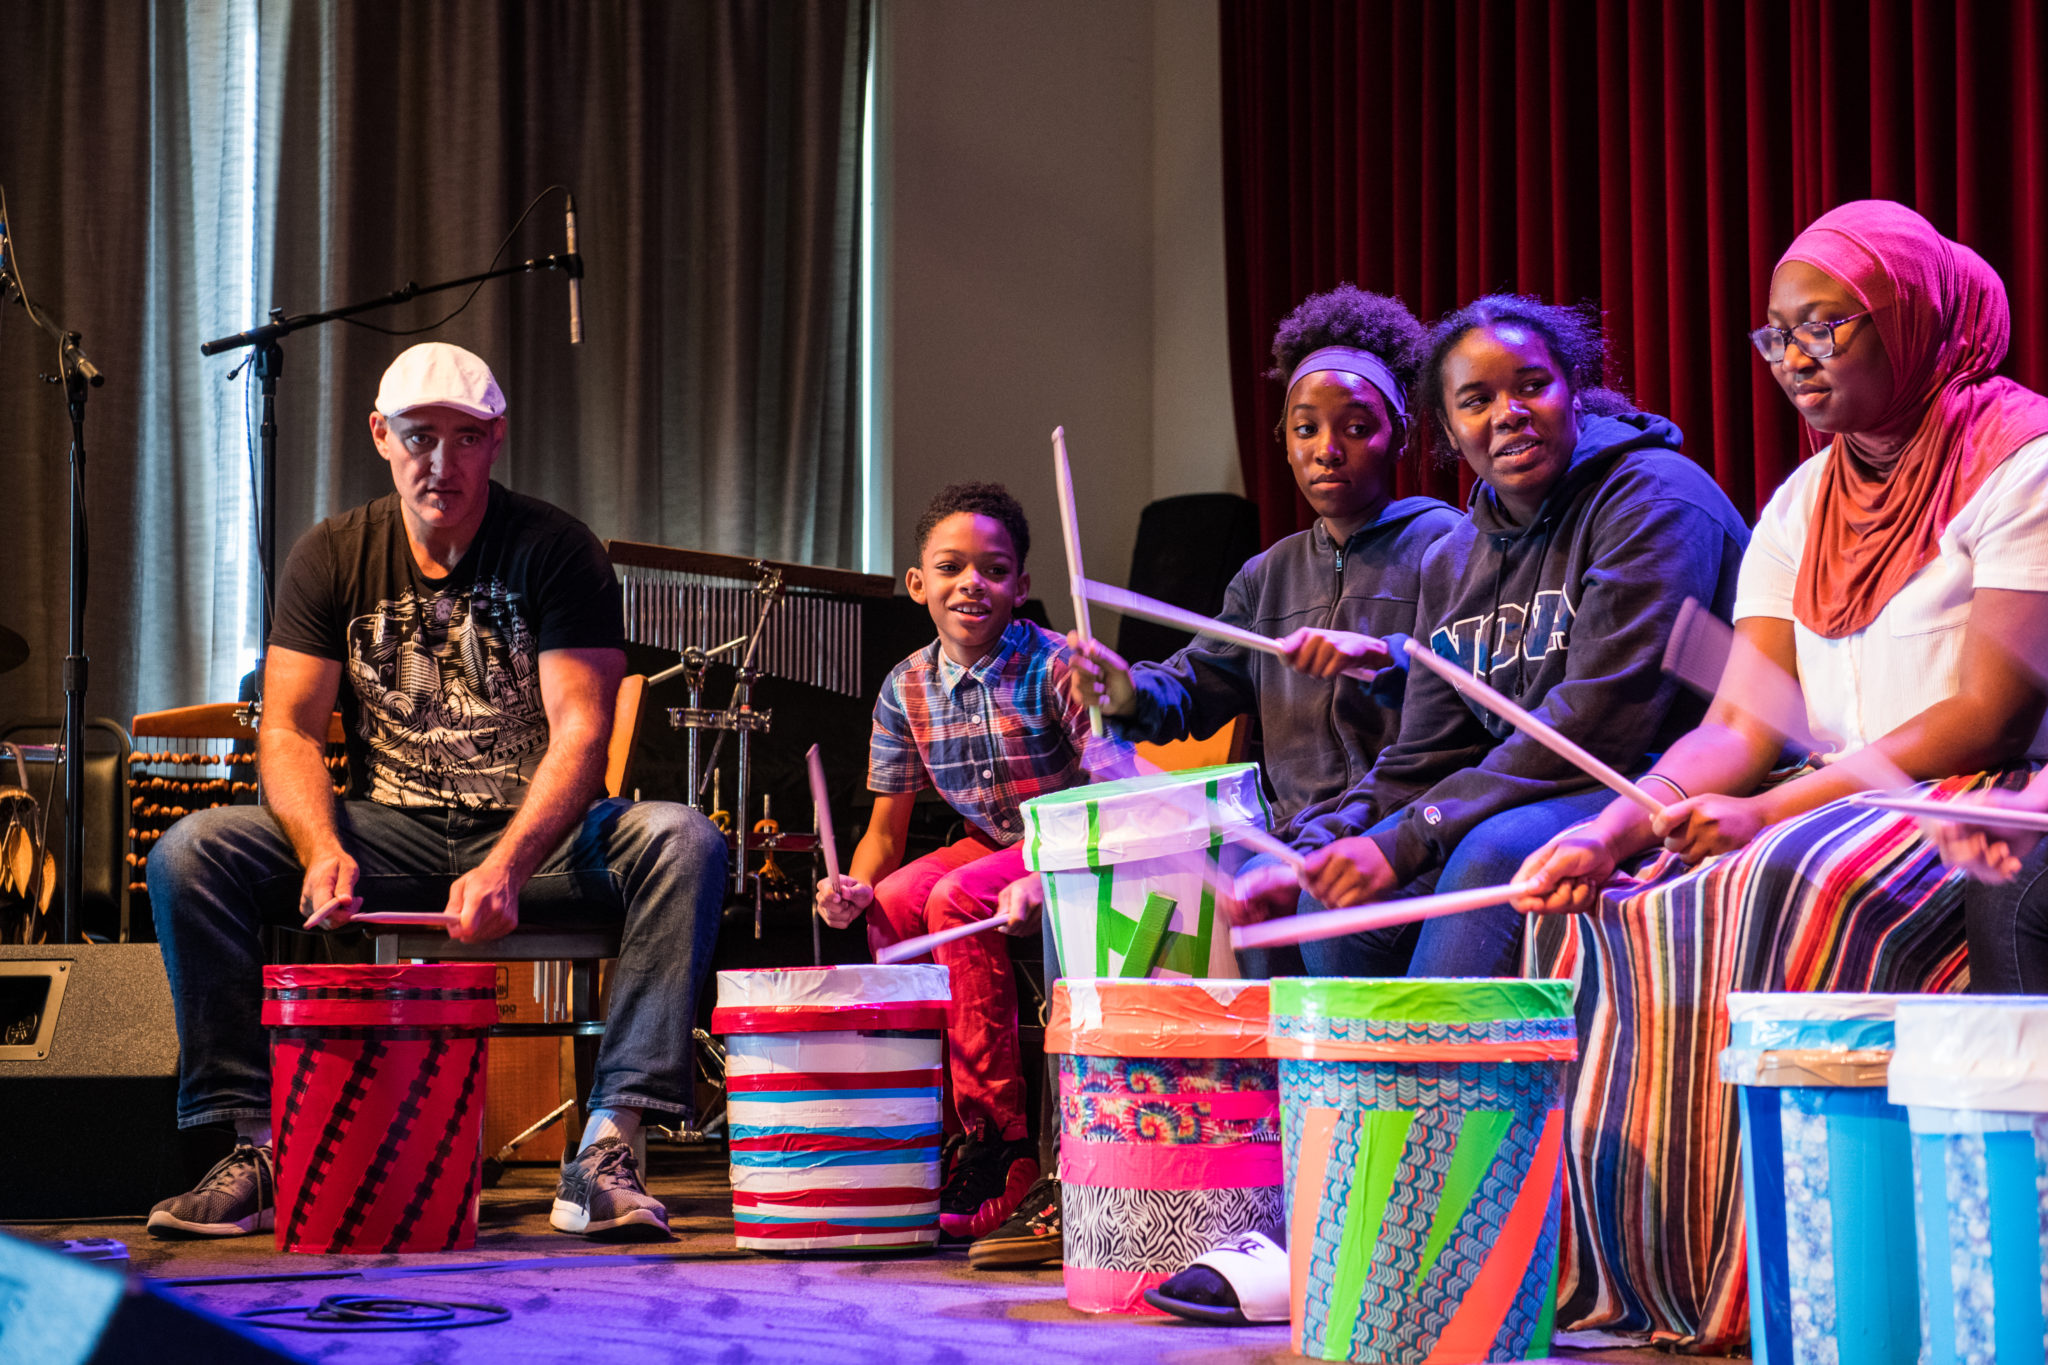 Josh Robinson sits on the left of the stage leading students in a bucket drumming exercise. To his right, four students sit behind their bucket drums, following along.